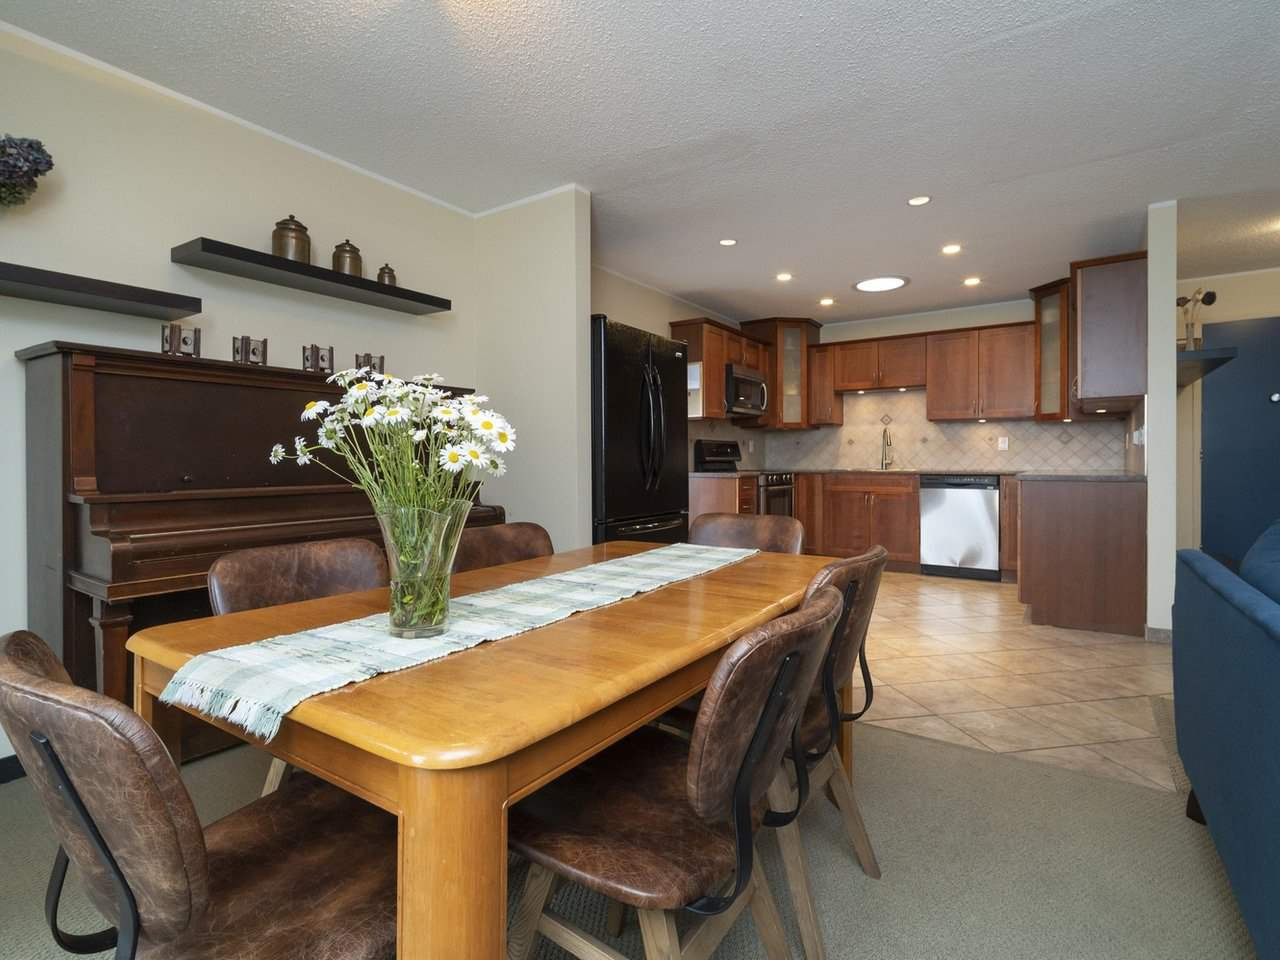 Photo 10: Photos: 2773 DAYBREAK Avenue in Coquitlam: Ranch Park House for sale : MLS®# R2457912